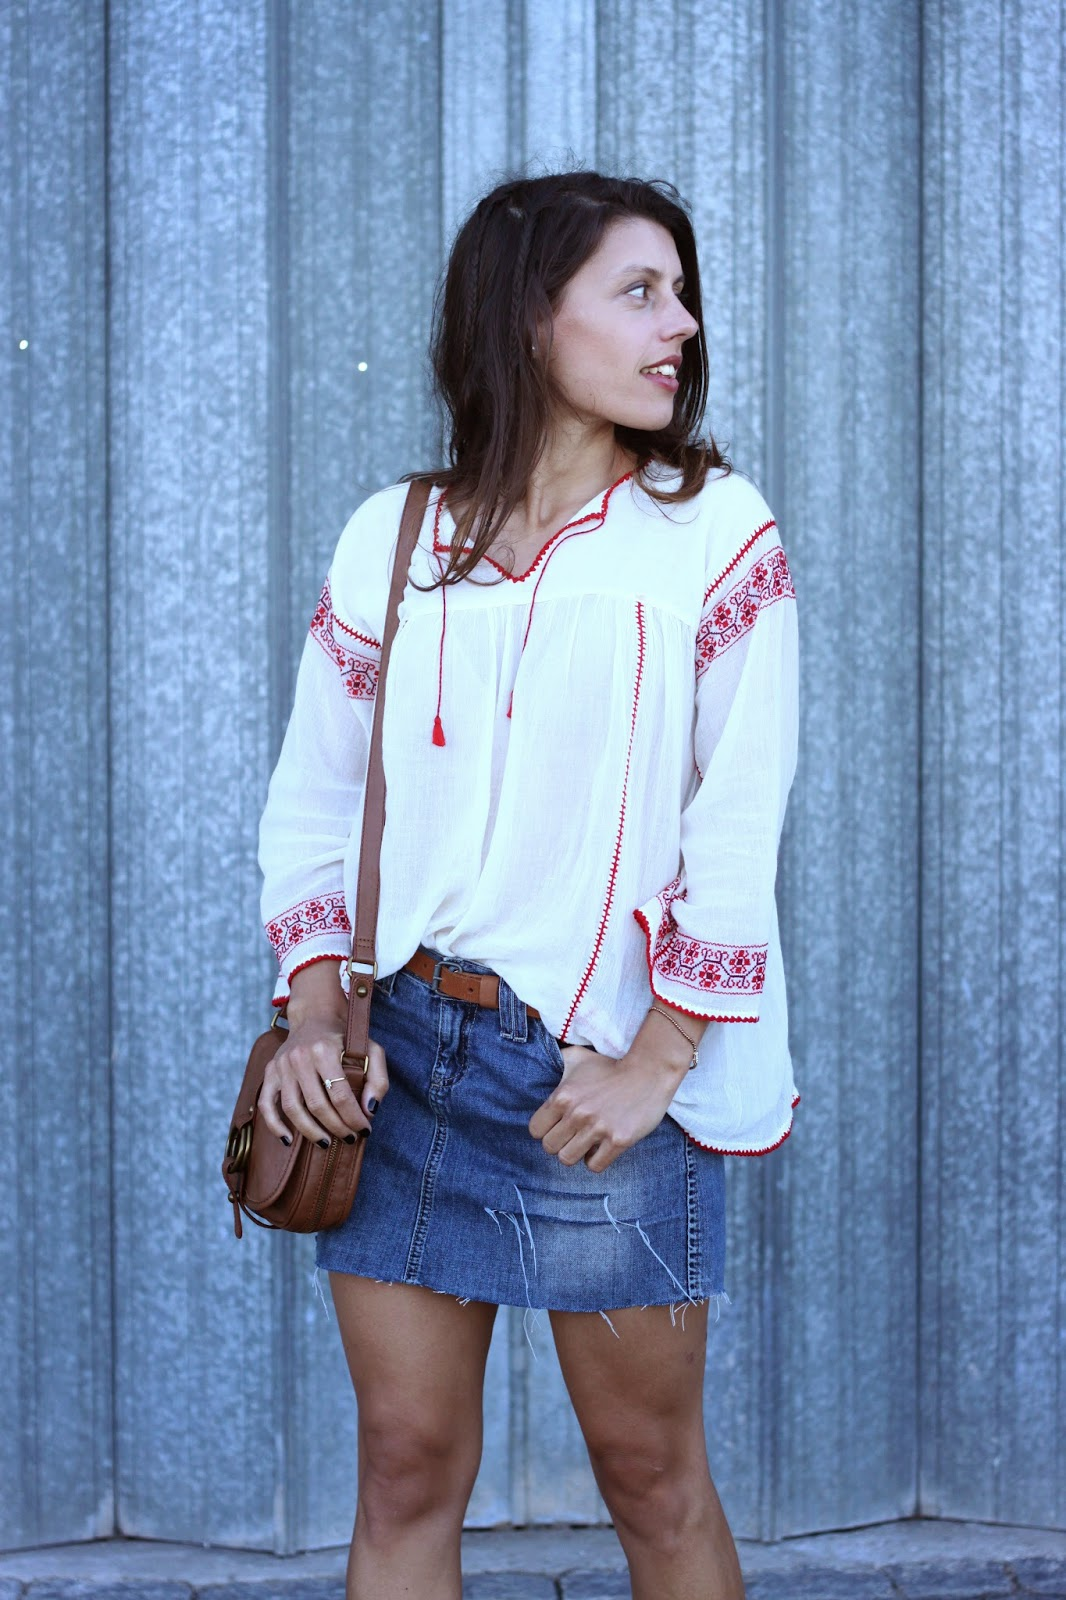 image denim skirt with cowboy boots